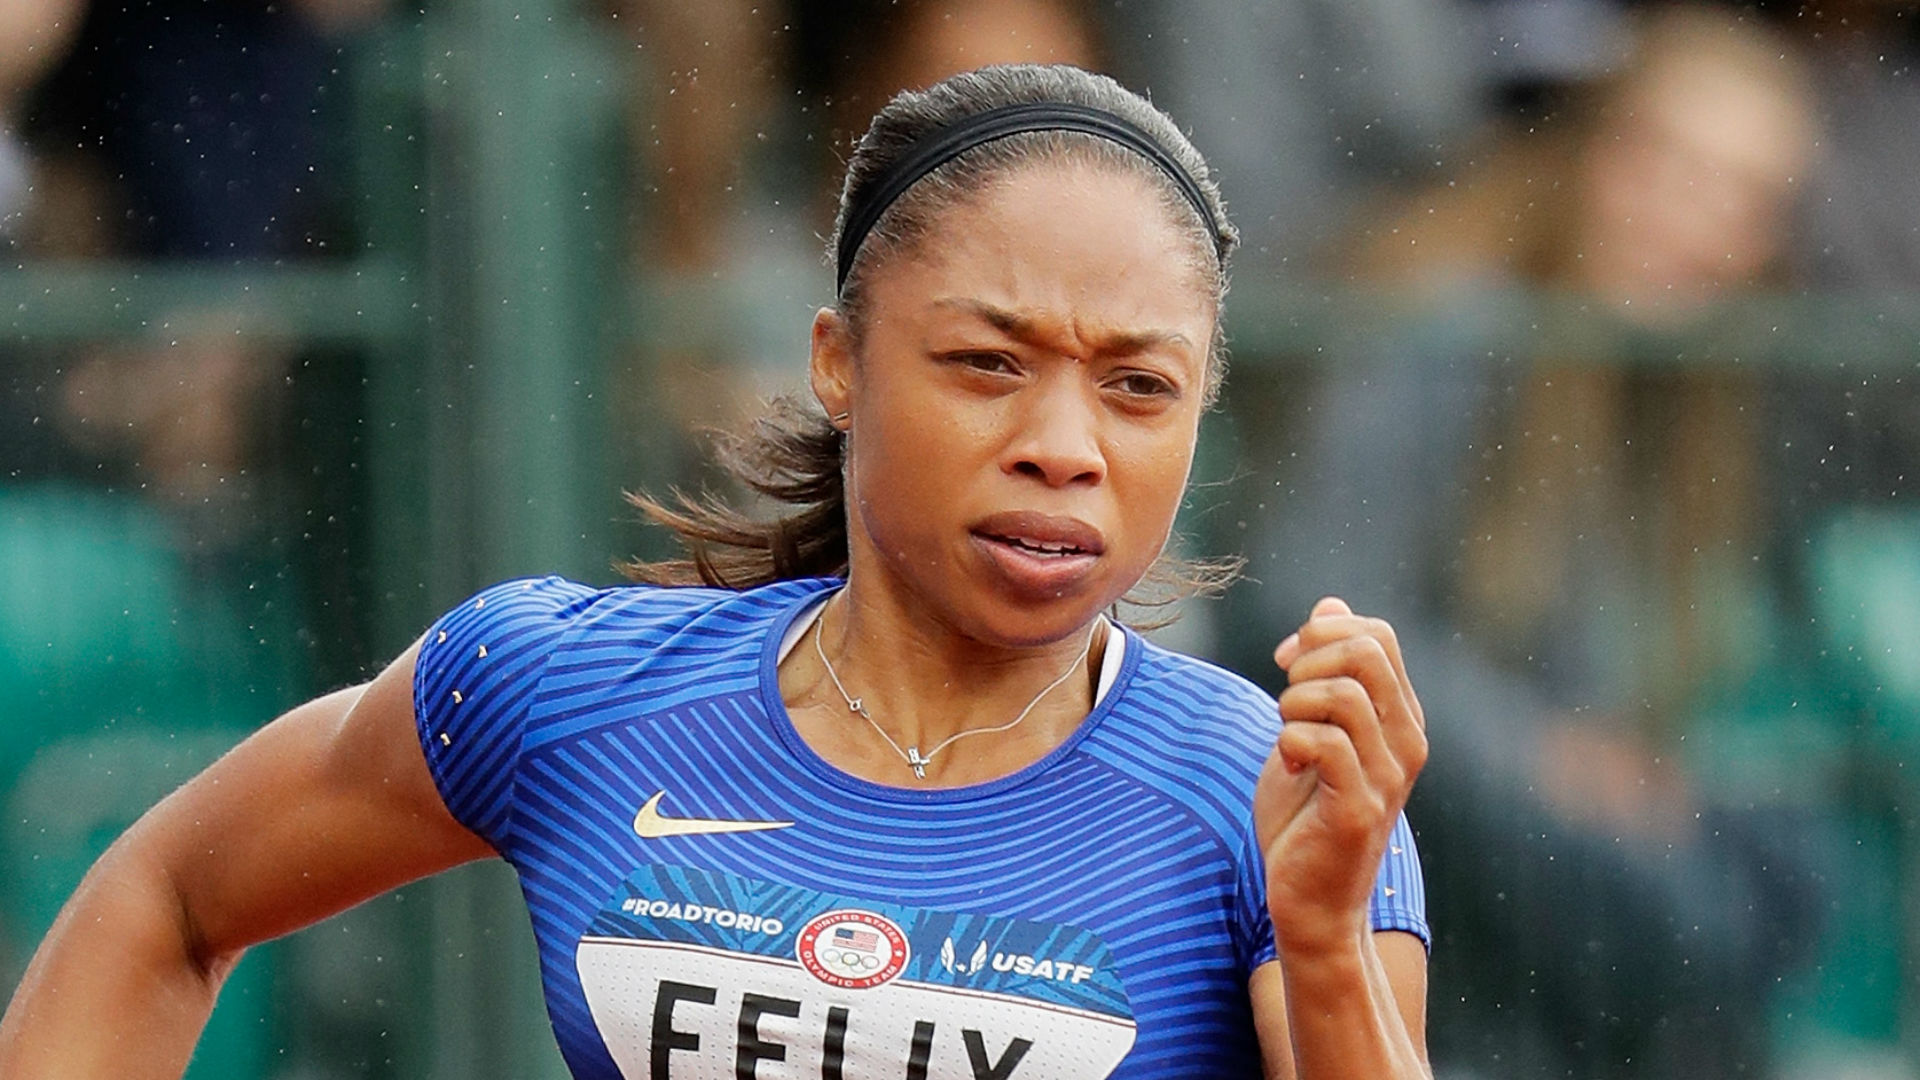 'The speed just wasn't there' for Allyson Felix